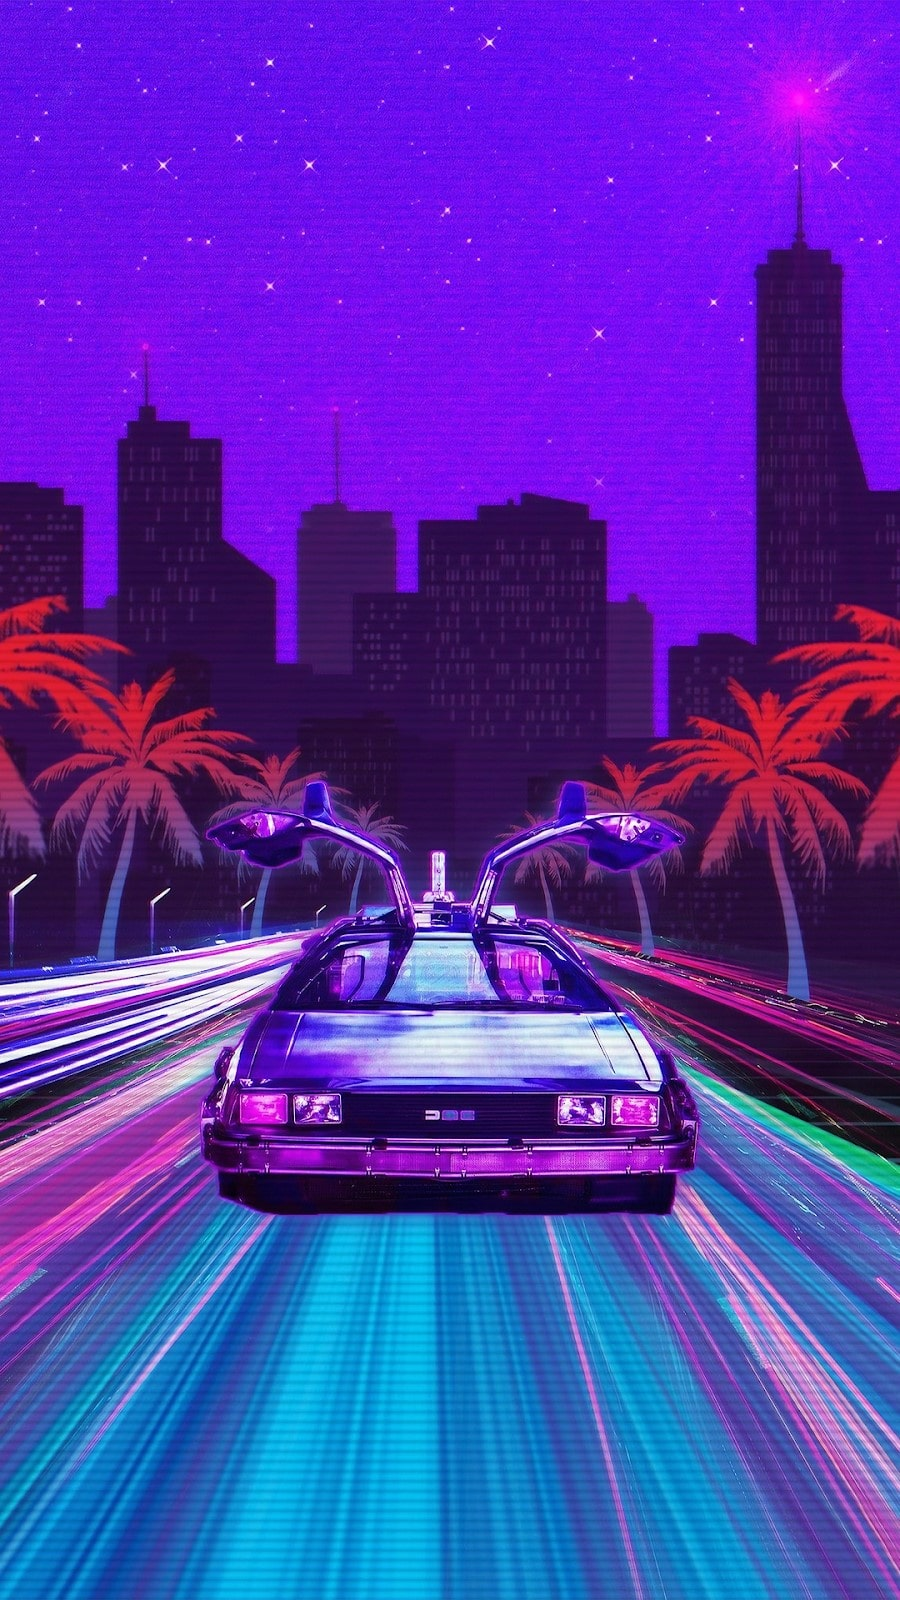 Vaporwave Car Wallpaper Kolpaper Awesome Free Hd Wallpapers